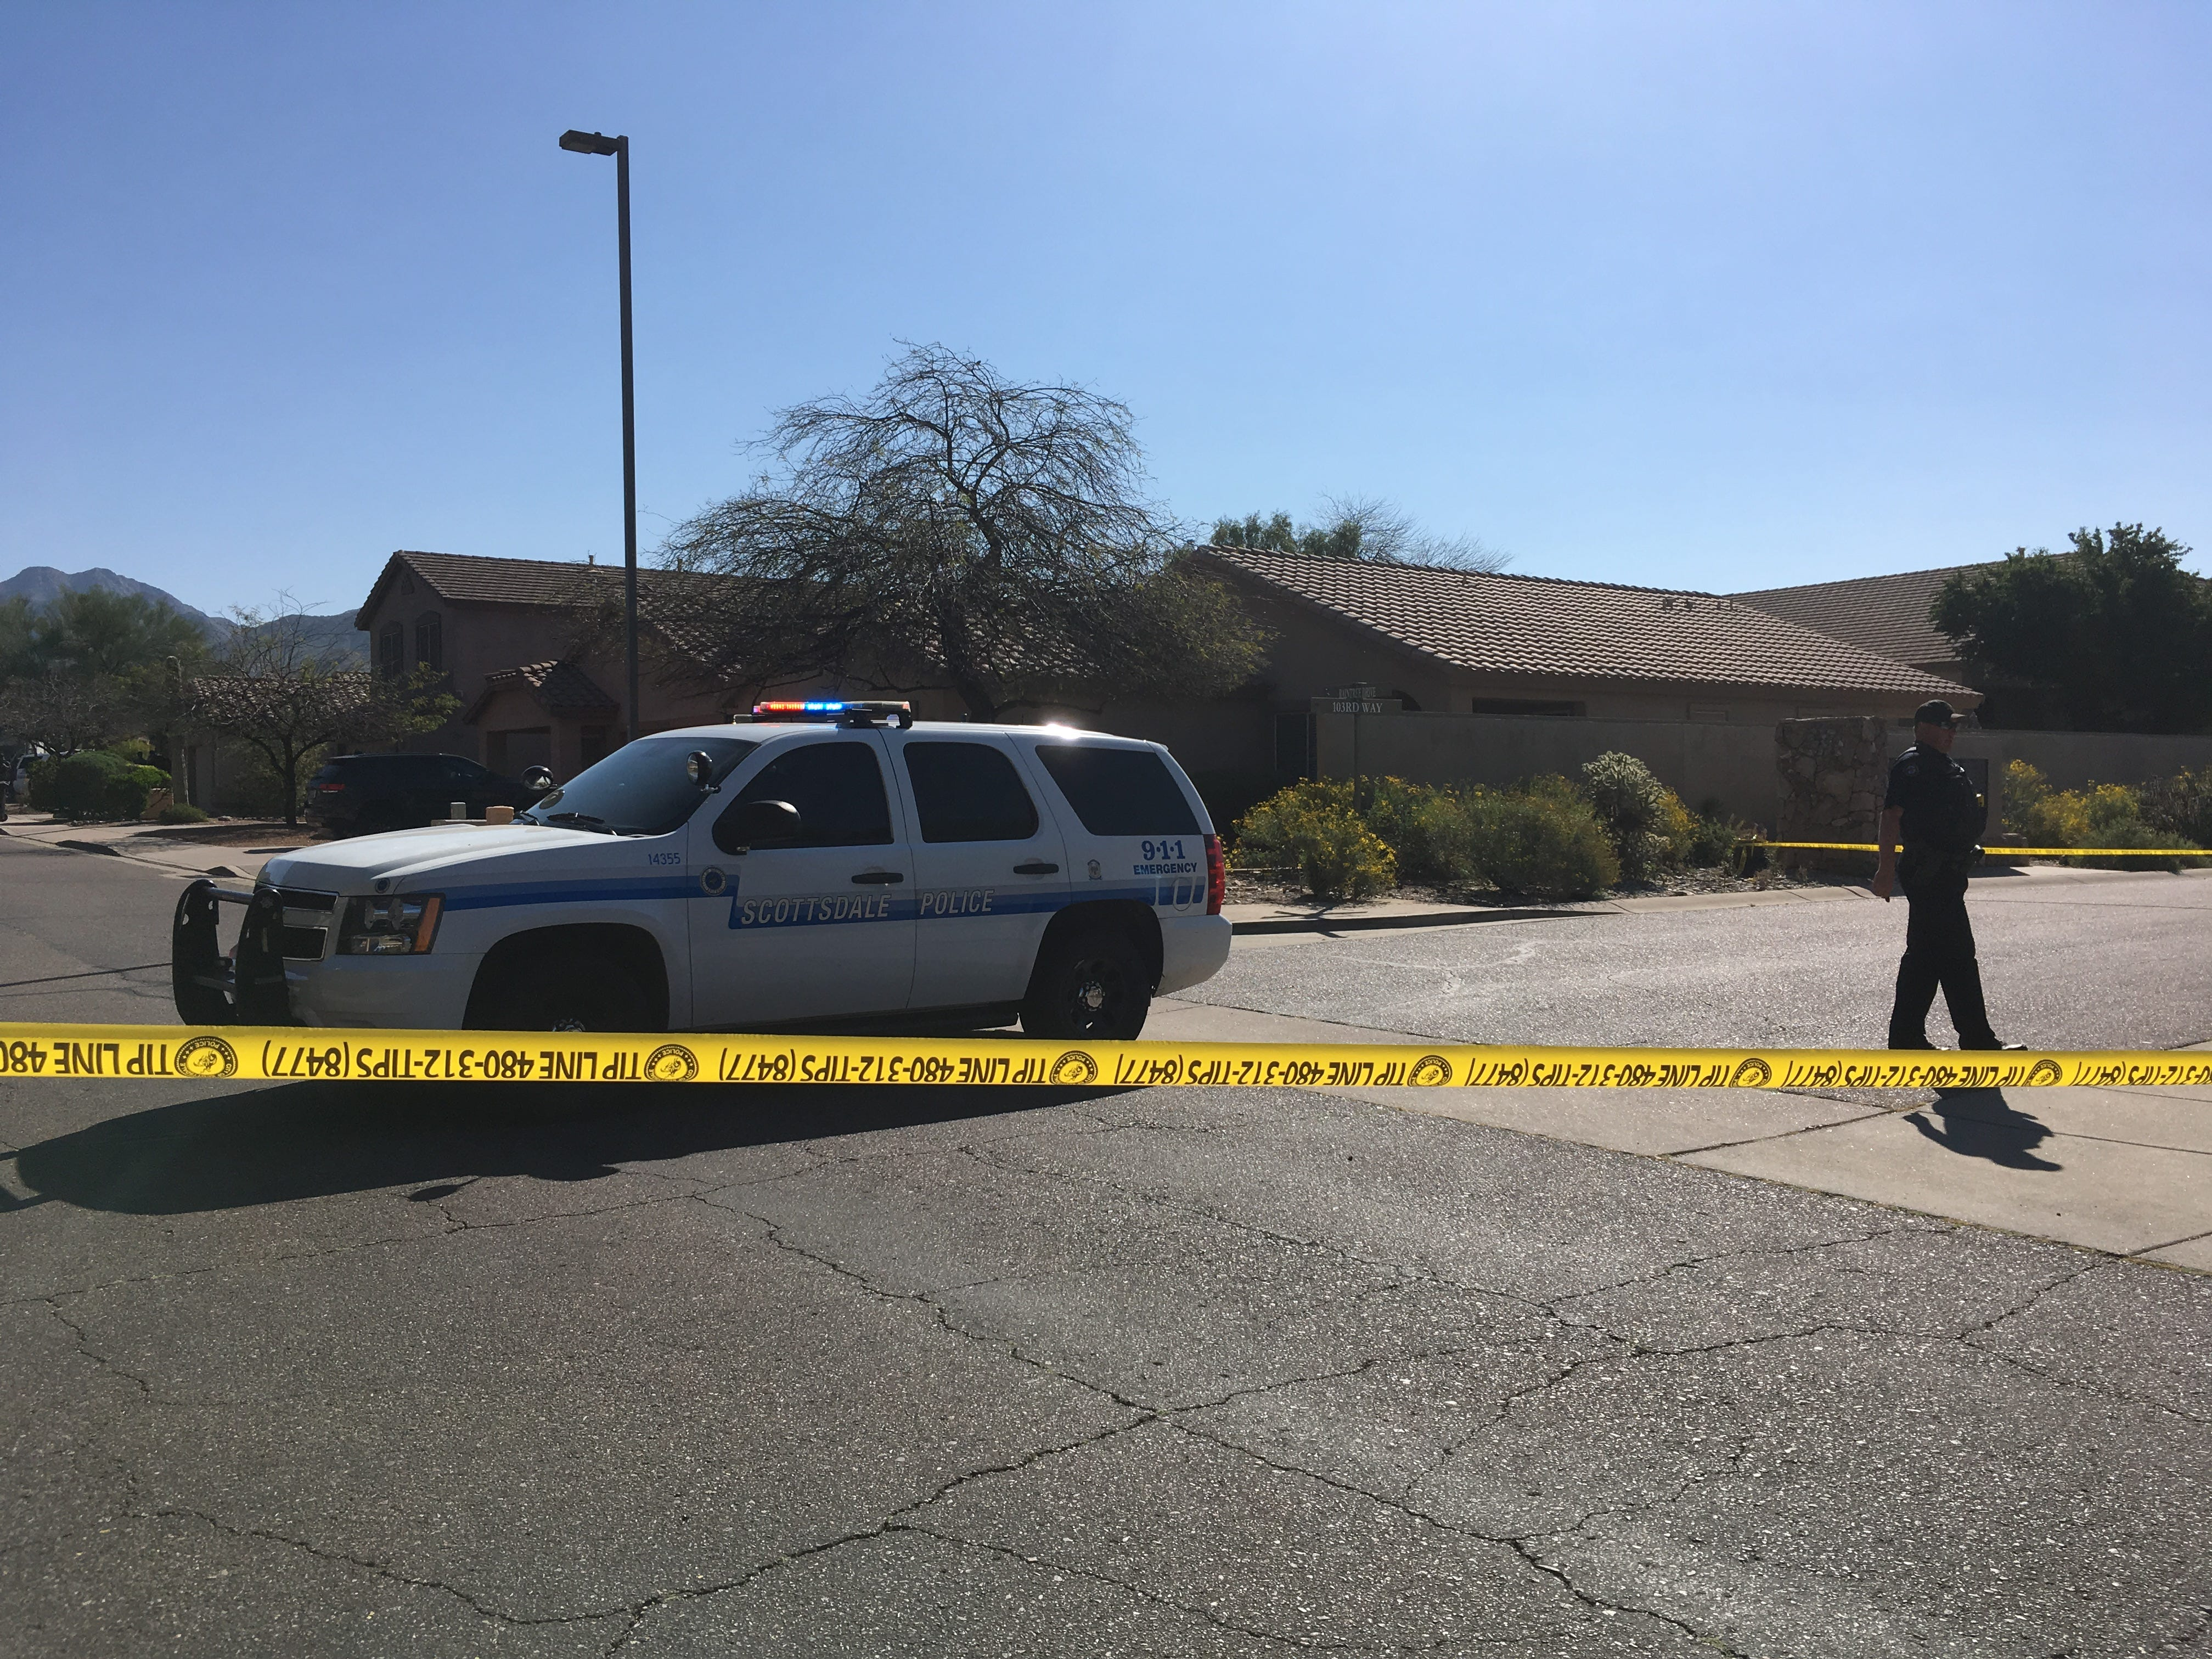 Scottsdale police arrested a man who barricaded himself inside his house when officers went to a residence near 105th Street and Raintree Drive to investigate a possible stabbing Thursday morning.